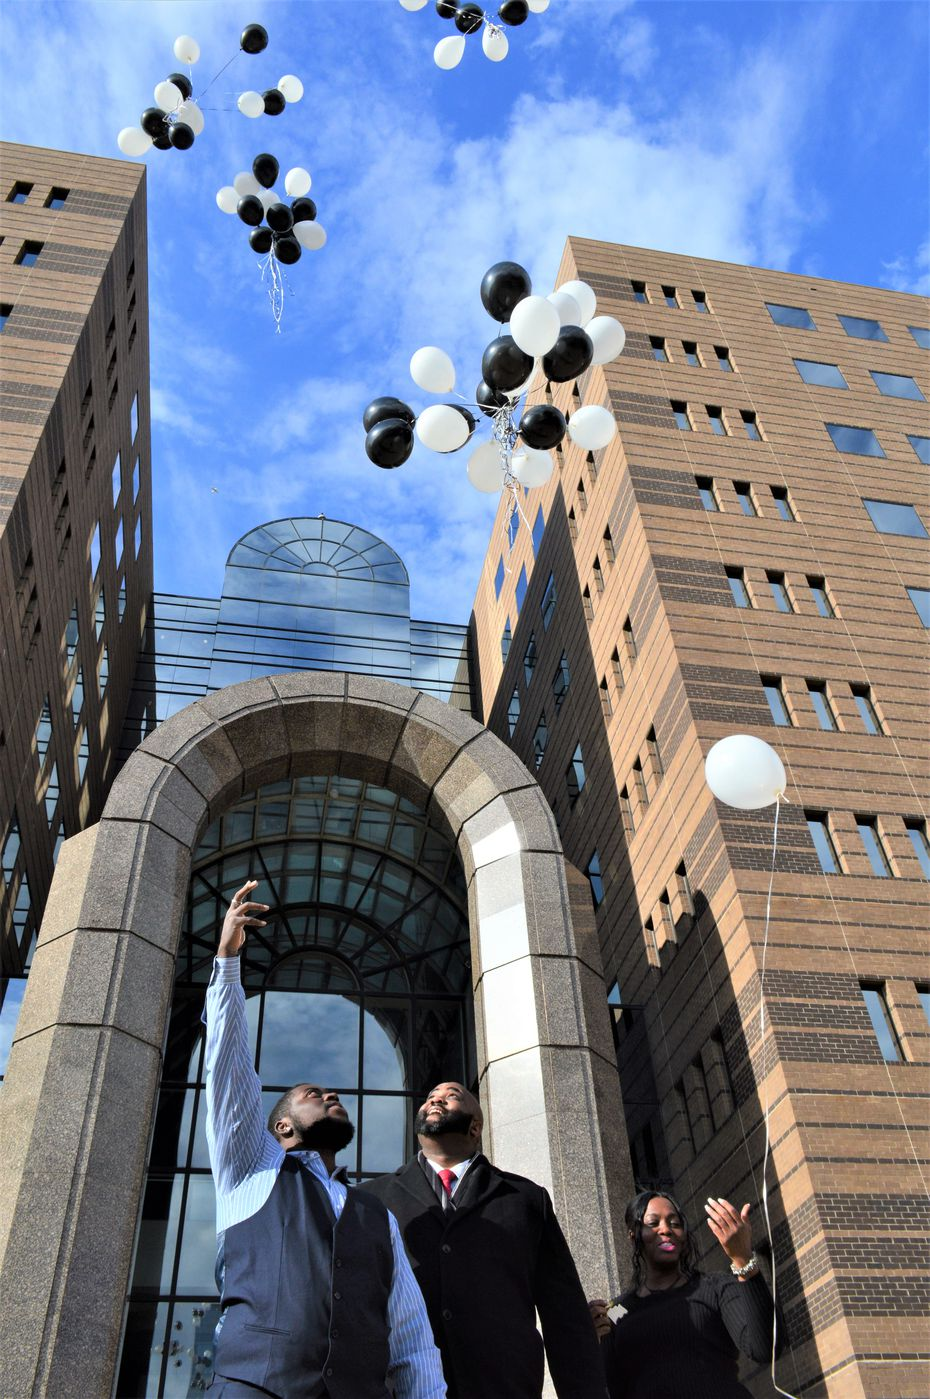 In November, Sammie Anderson (right) launched balloons with her family outside a Dallas courthouse to celebrate the exoneration of her sons Grant Bible (left) and Sam Bible, who is not pictured, for allegedly interfering with DeSoto police last August. The family's attorney Anthony Farmer (center) also joined in the celebration.